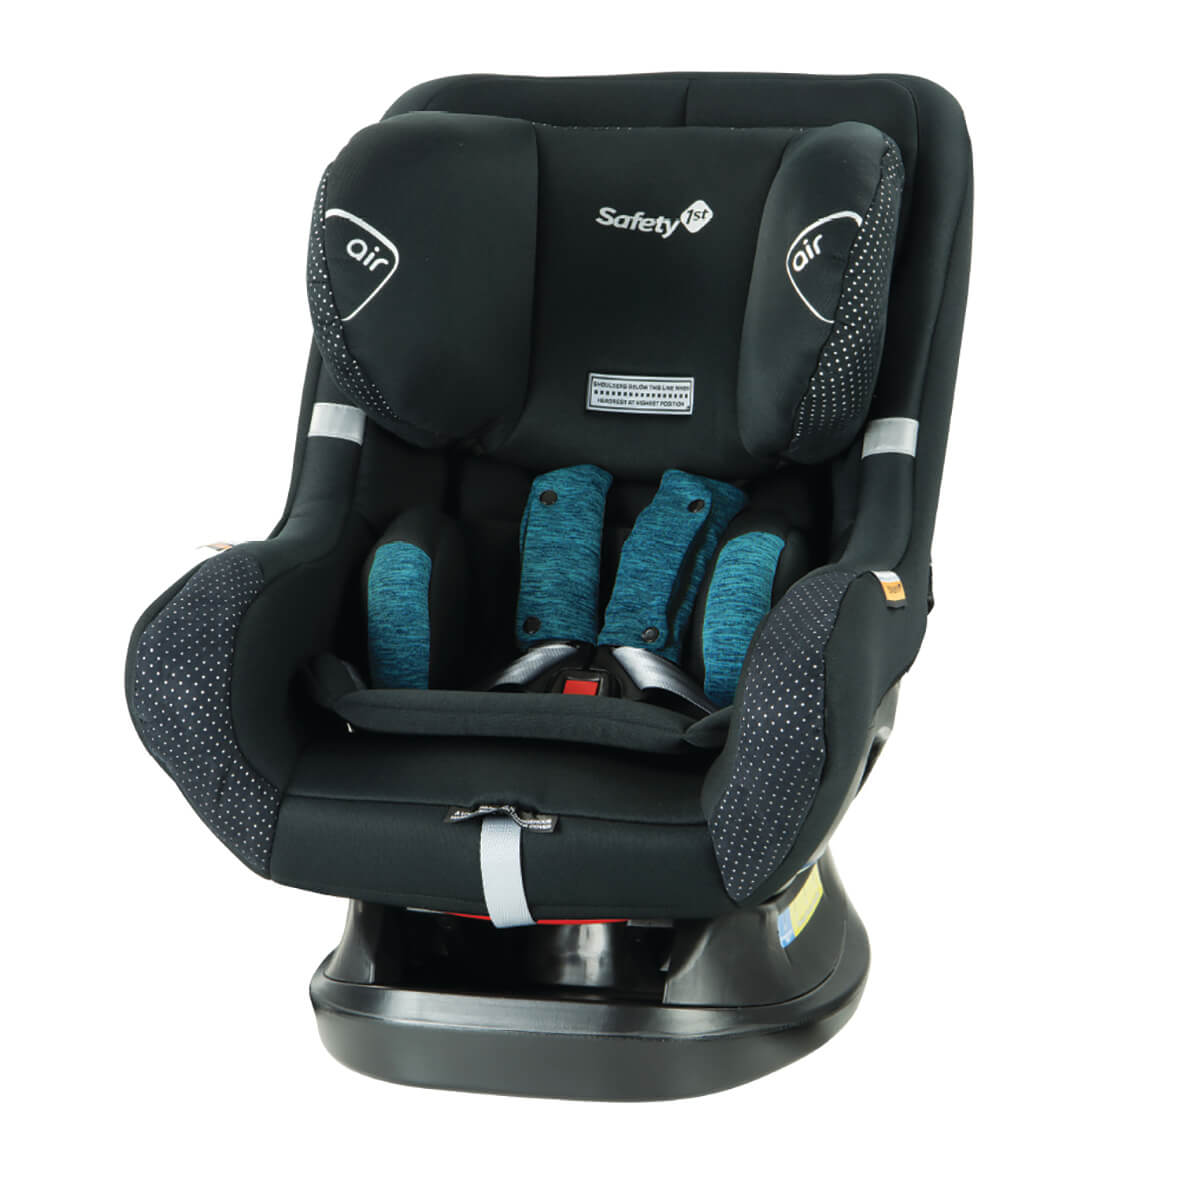 Safety 1st Summit ISO 30 Convertible Car Seat | Bubs n Grubs